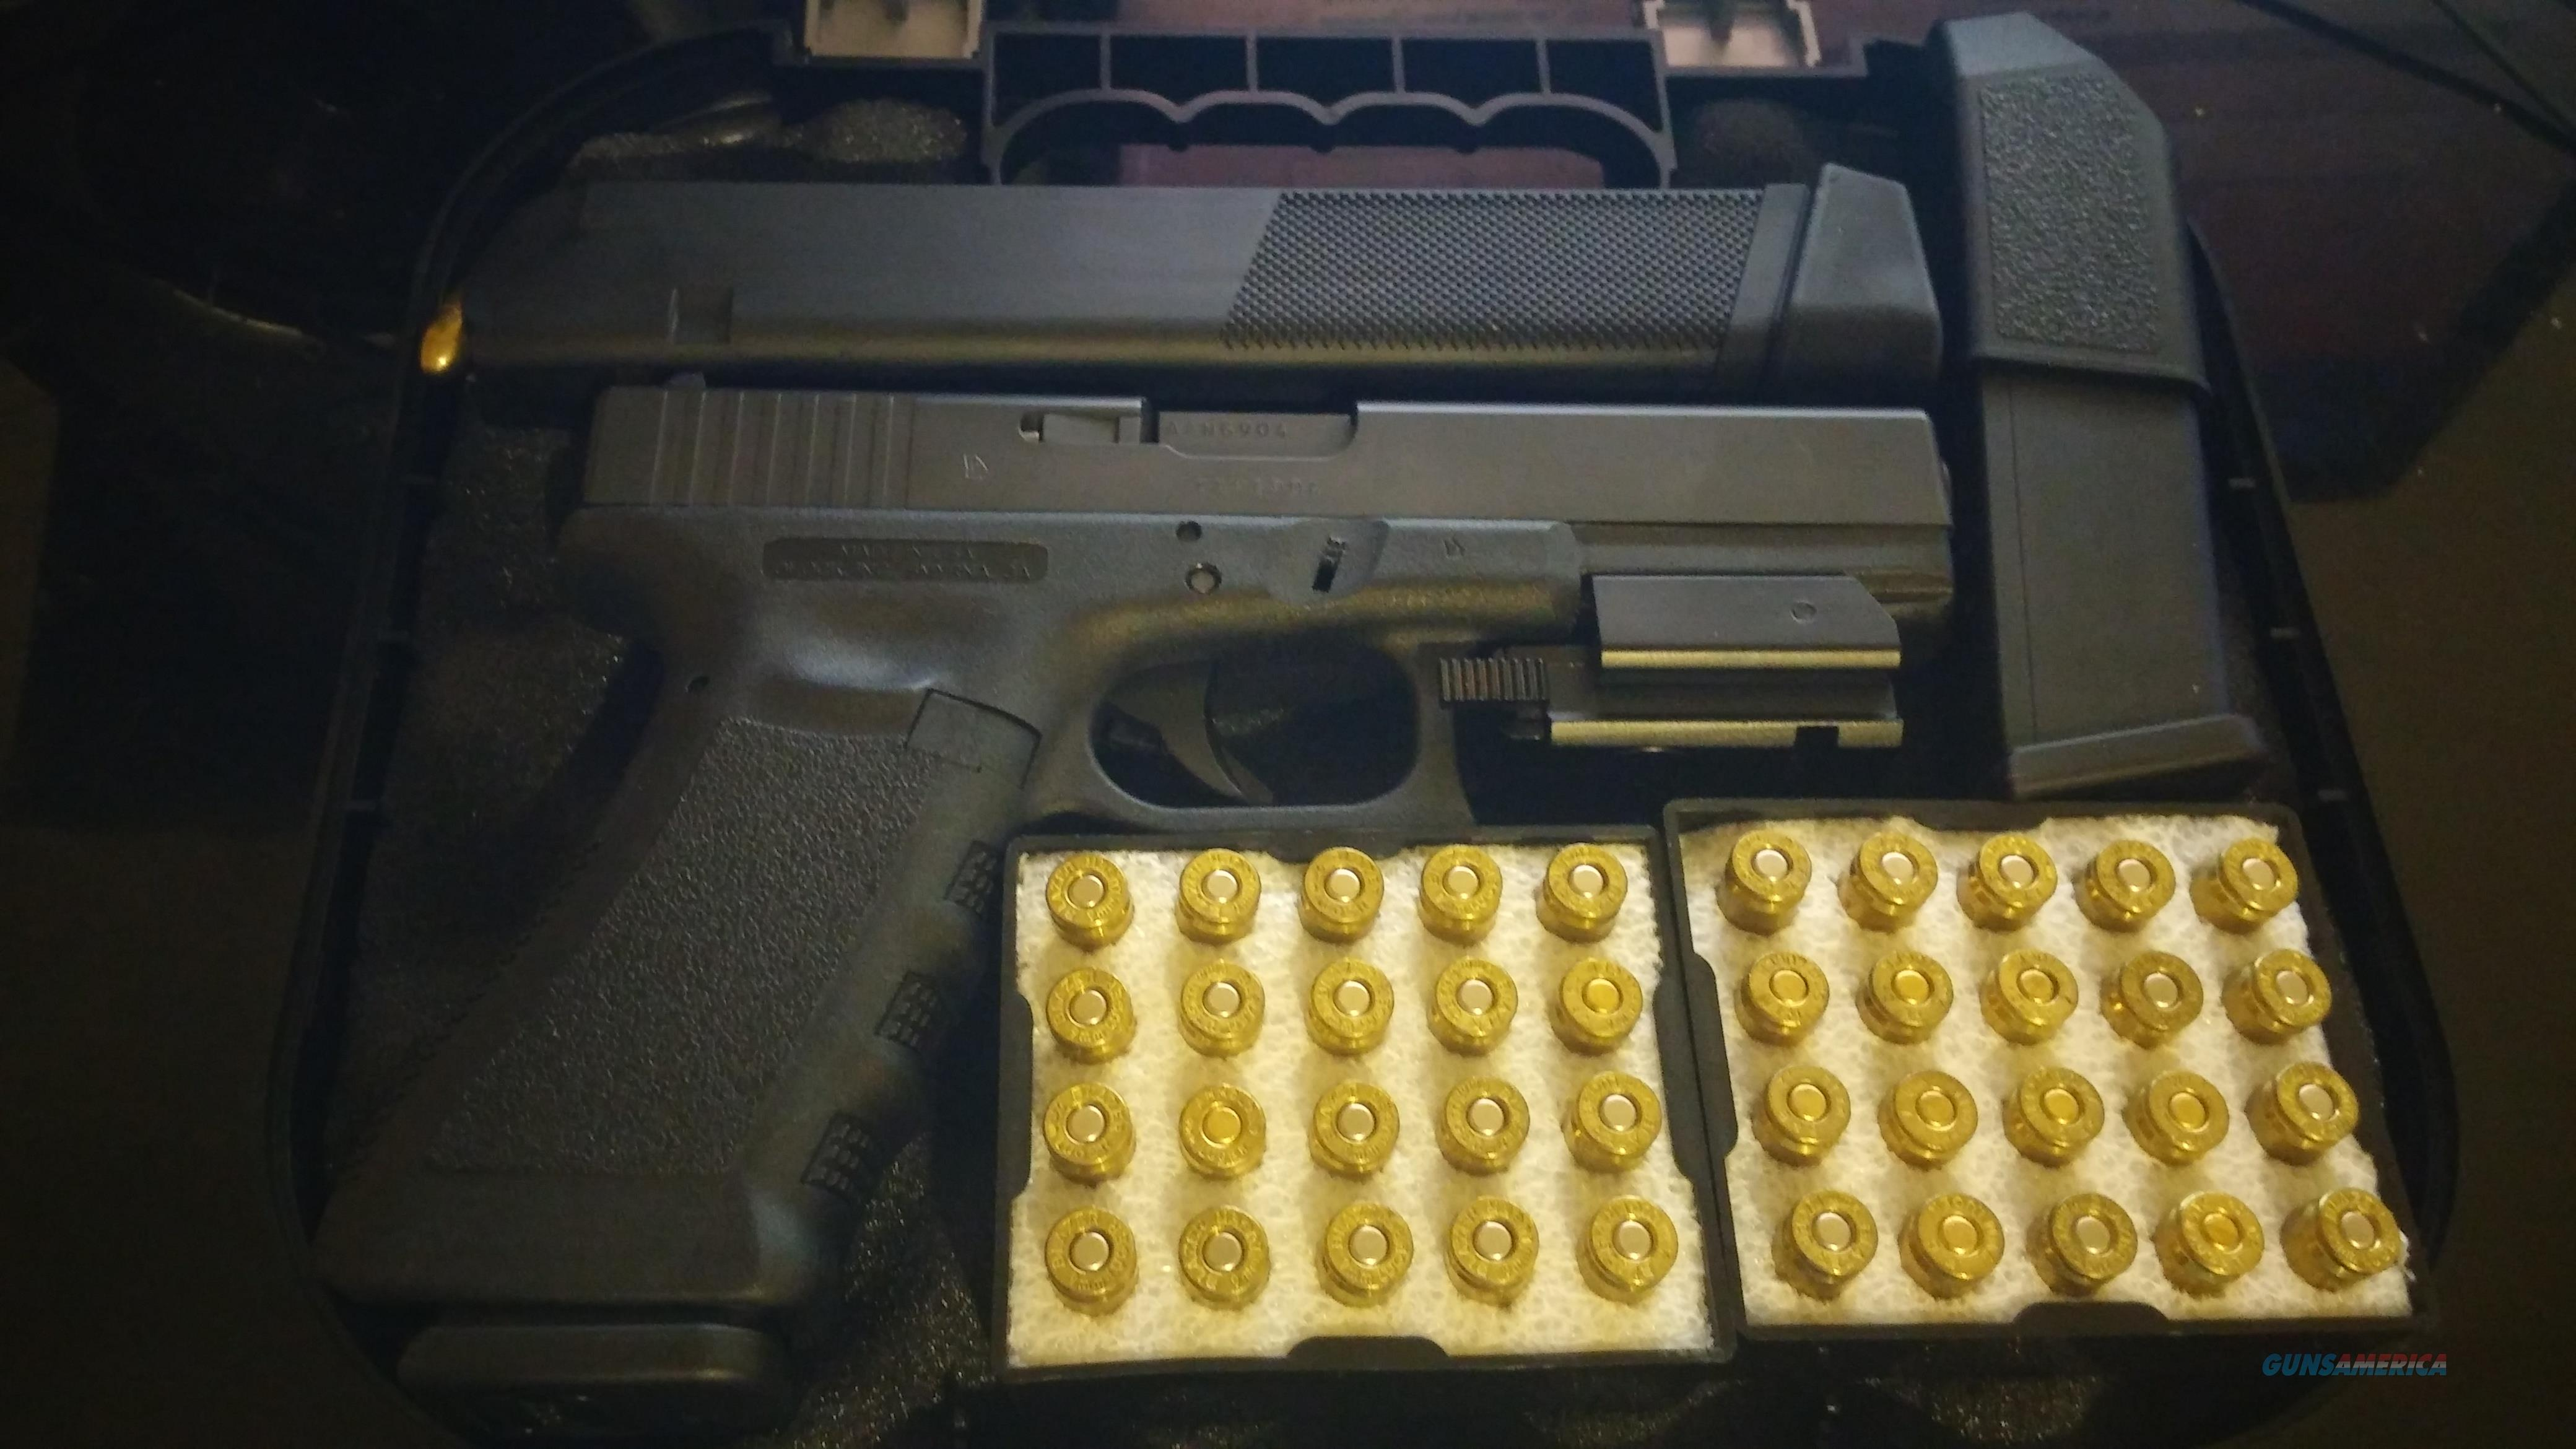 Glock 17 plus Extended Mag, Red Beam Sight, 100 Luger rd  Guns > Pistols > Glock Pistols > 17